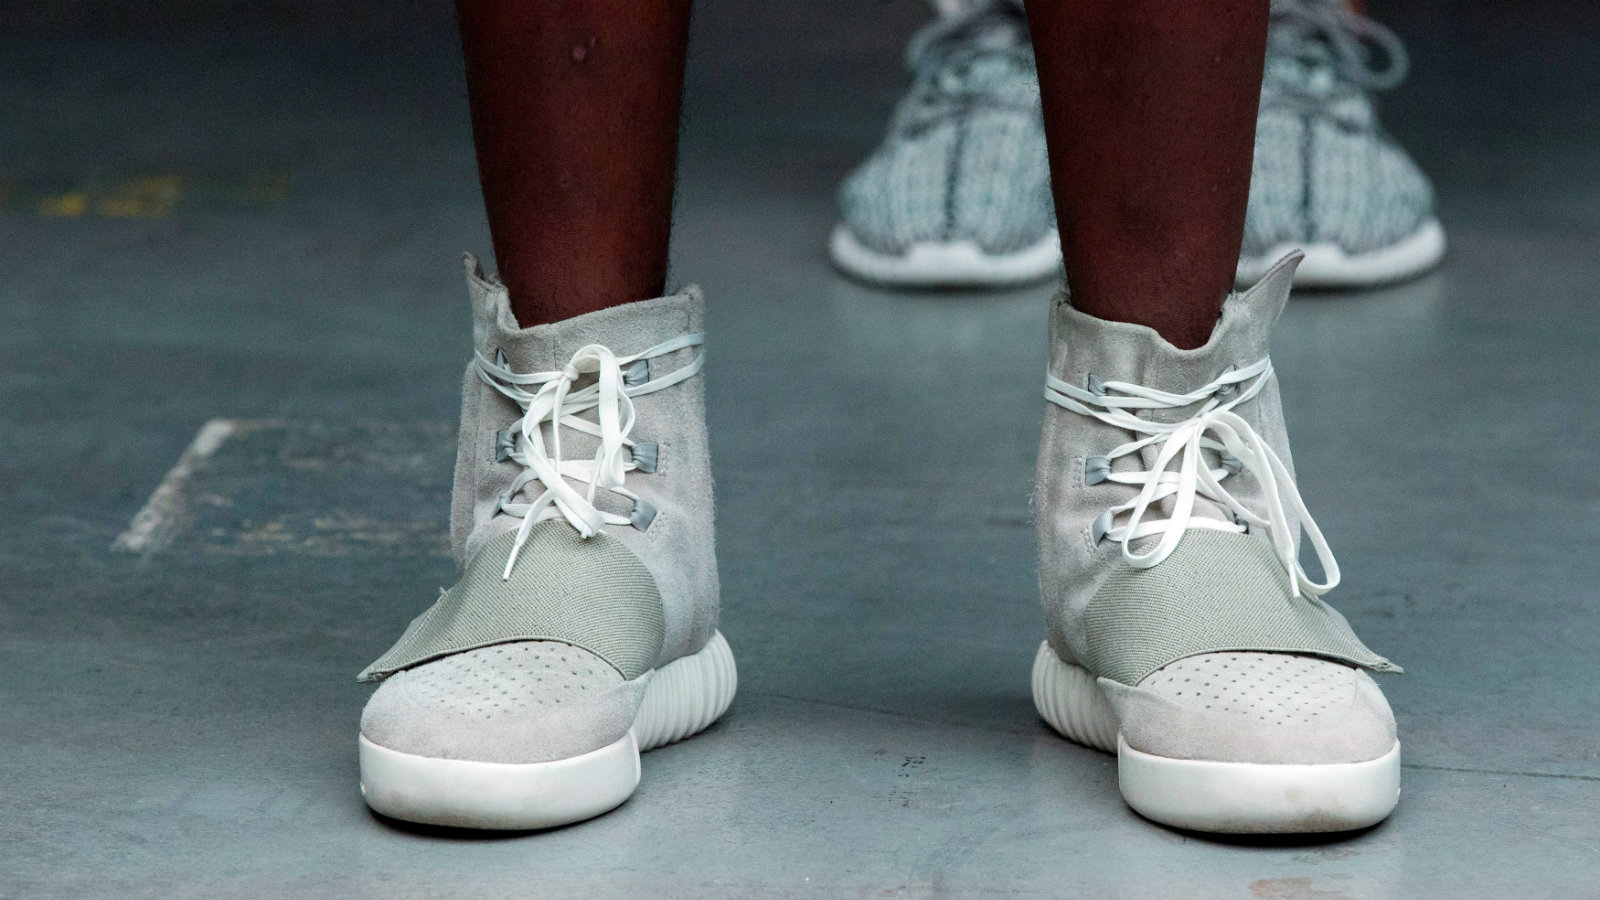 A model wears a pair of Adidas Yeezy 750 Boost shoes designed by Kanye West as part of his Fall/Winter 2015 partnership line with Adidas at New York Fashion Week, U.S. February 12, 2015. Picture taken February 12, 2015.